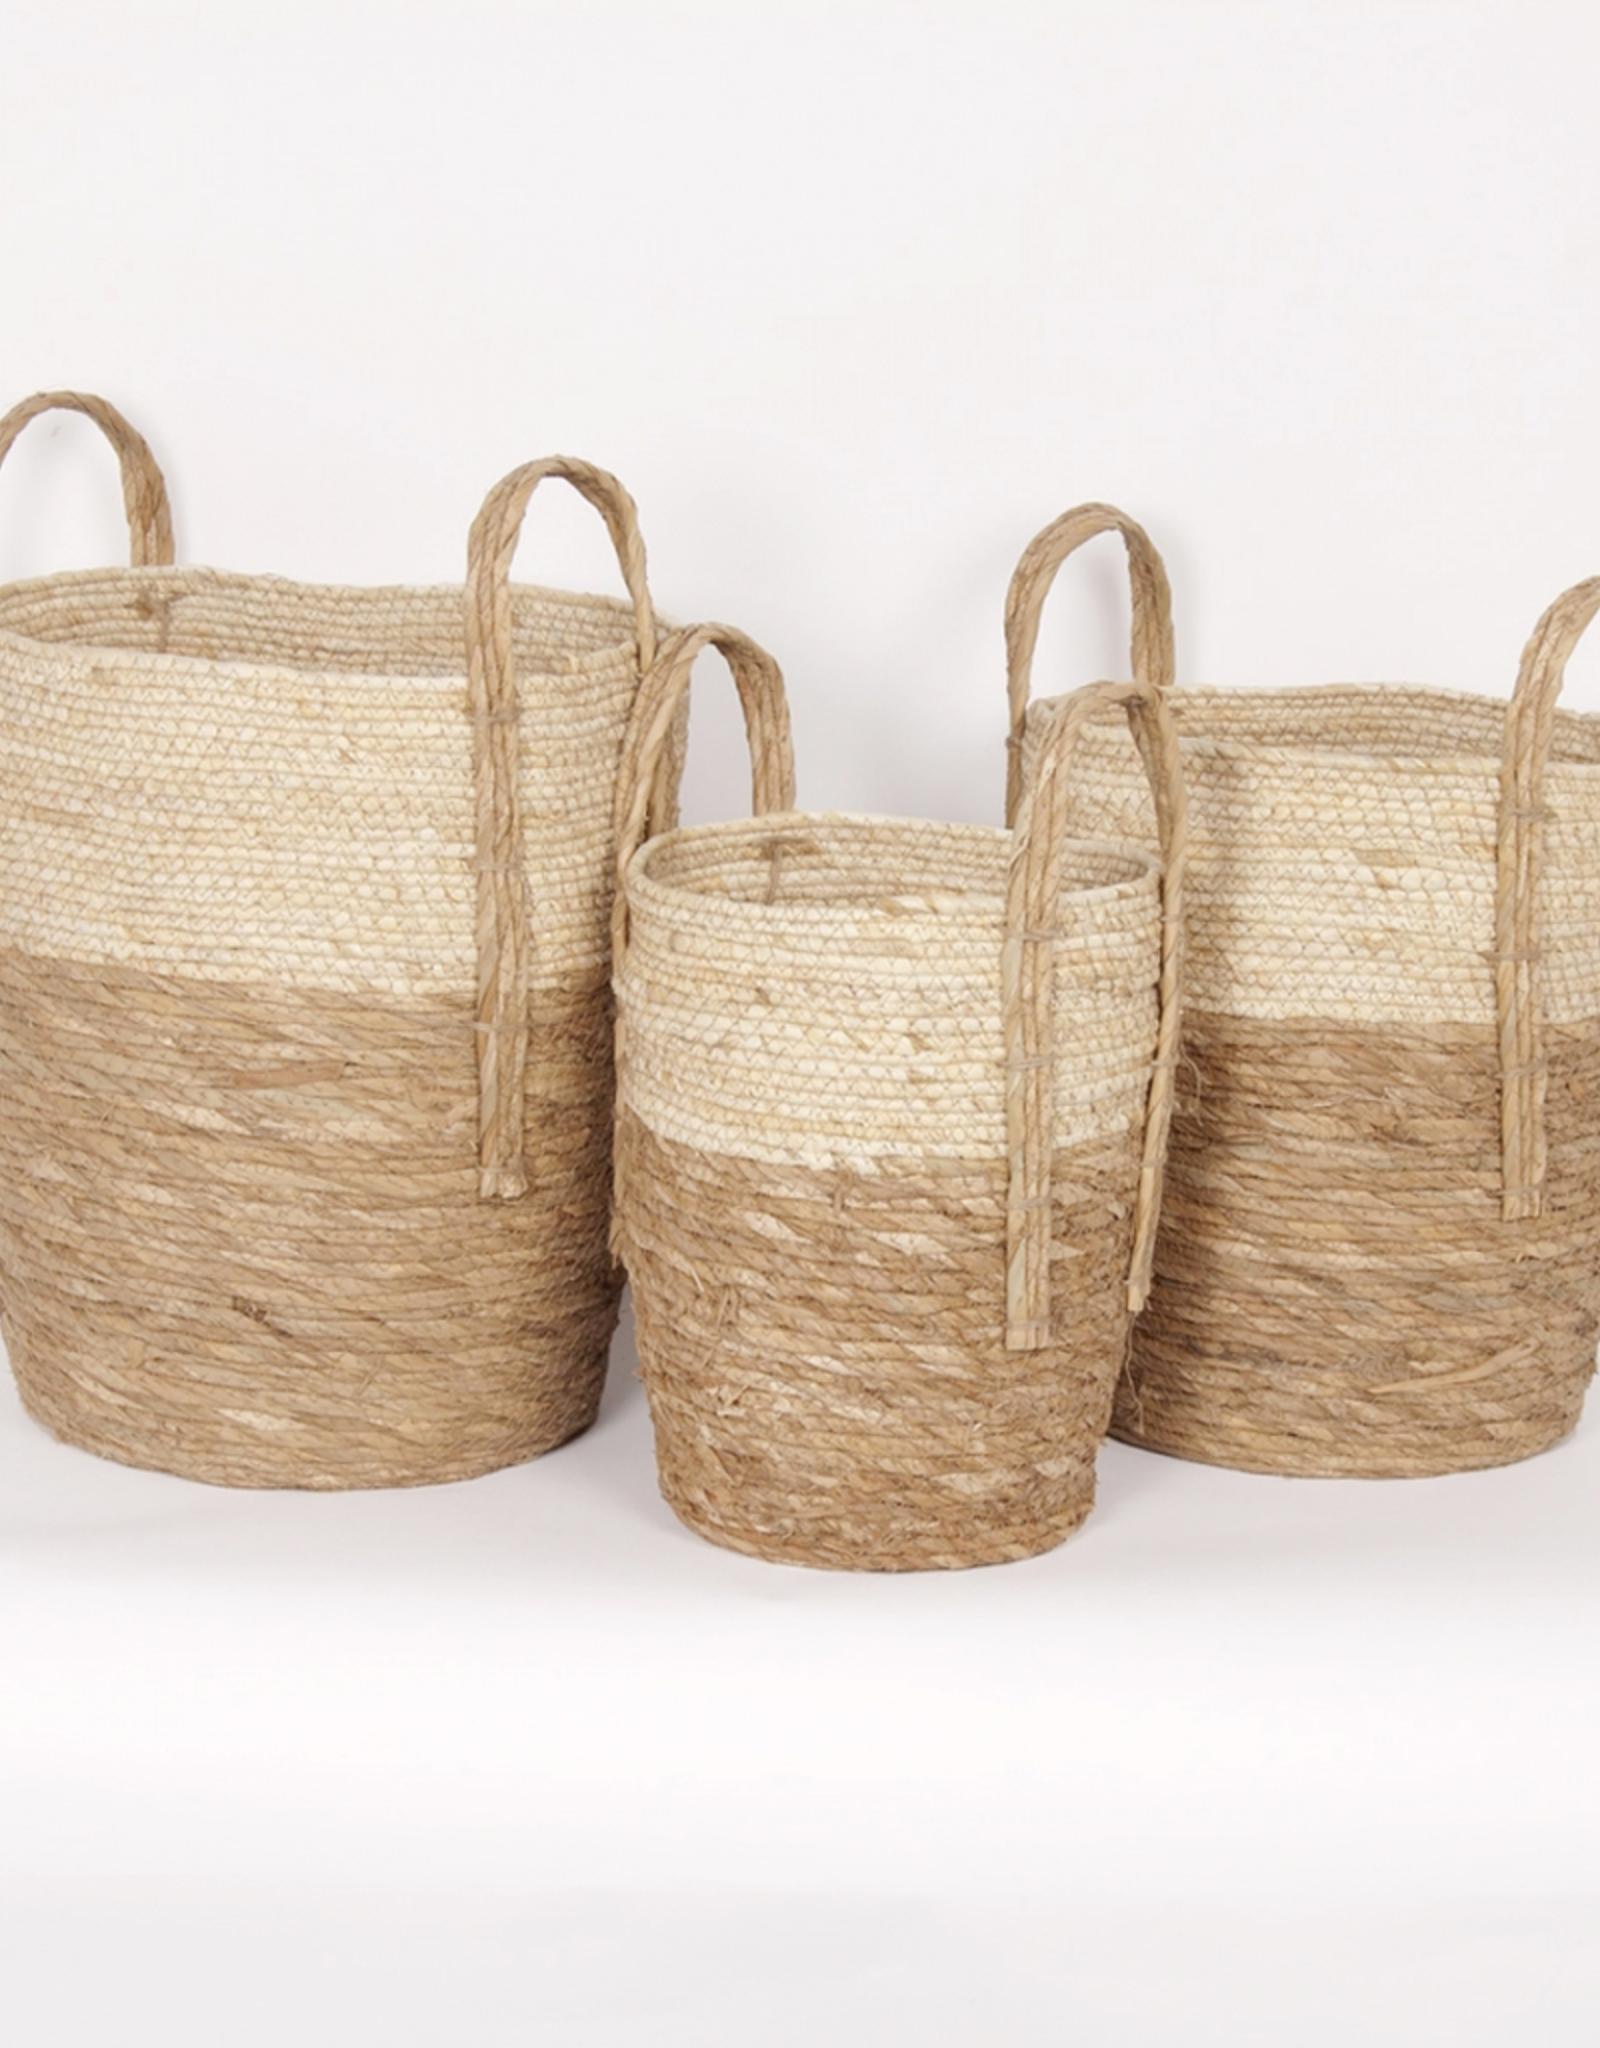 New Woven Straw Basket - beige + natural